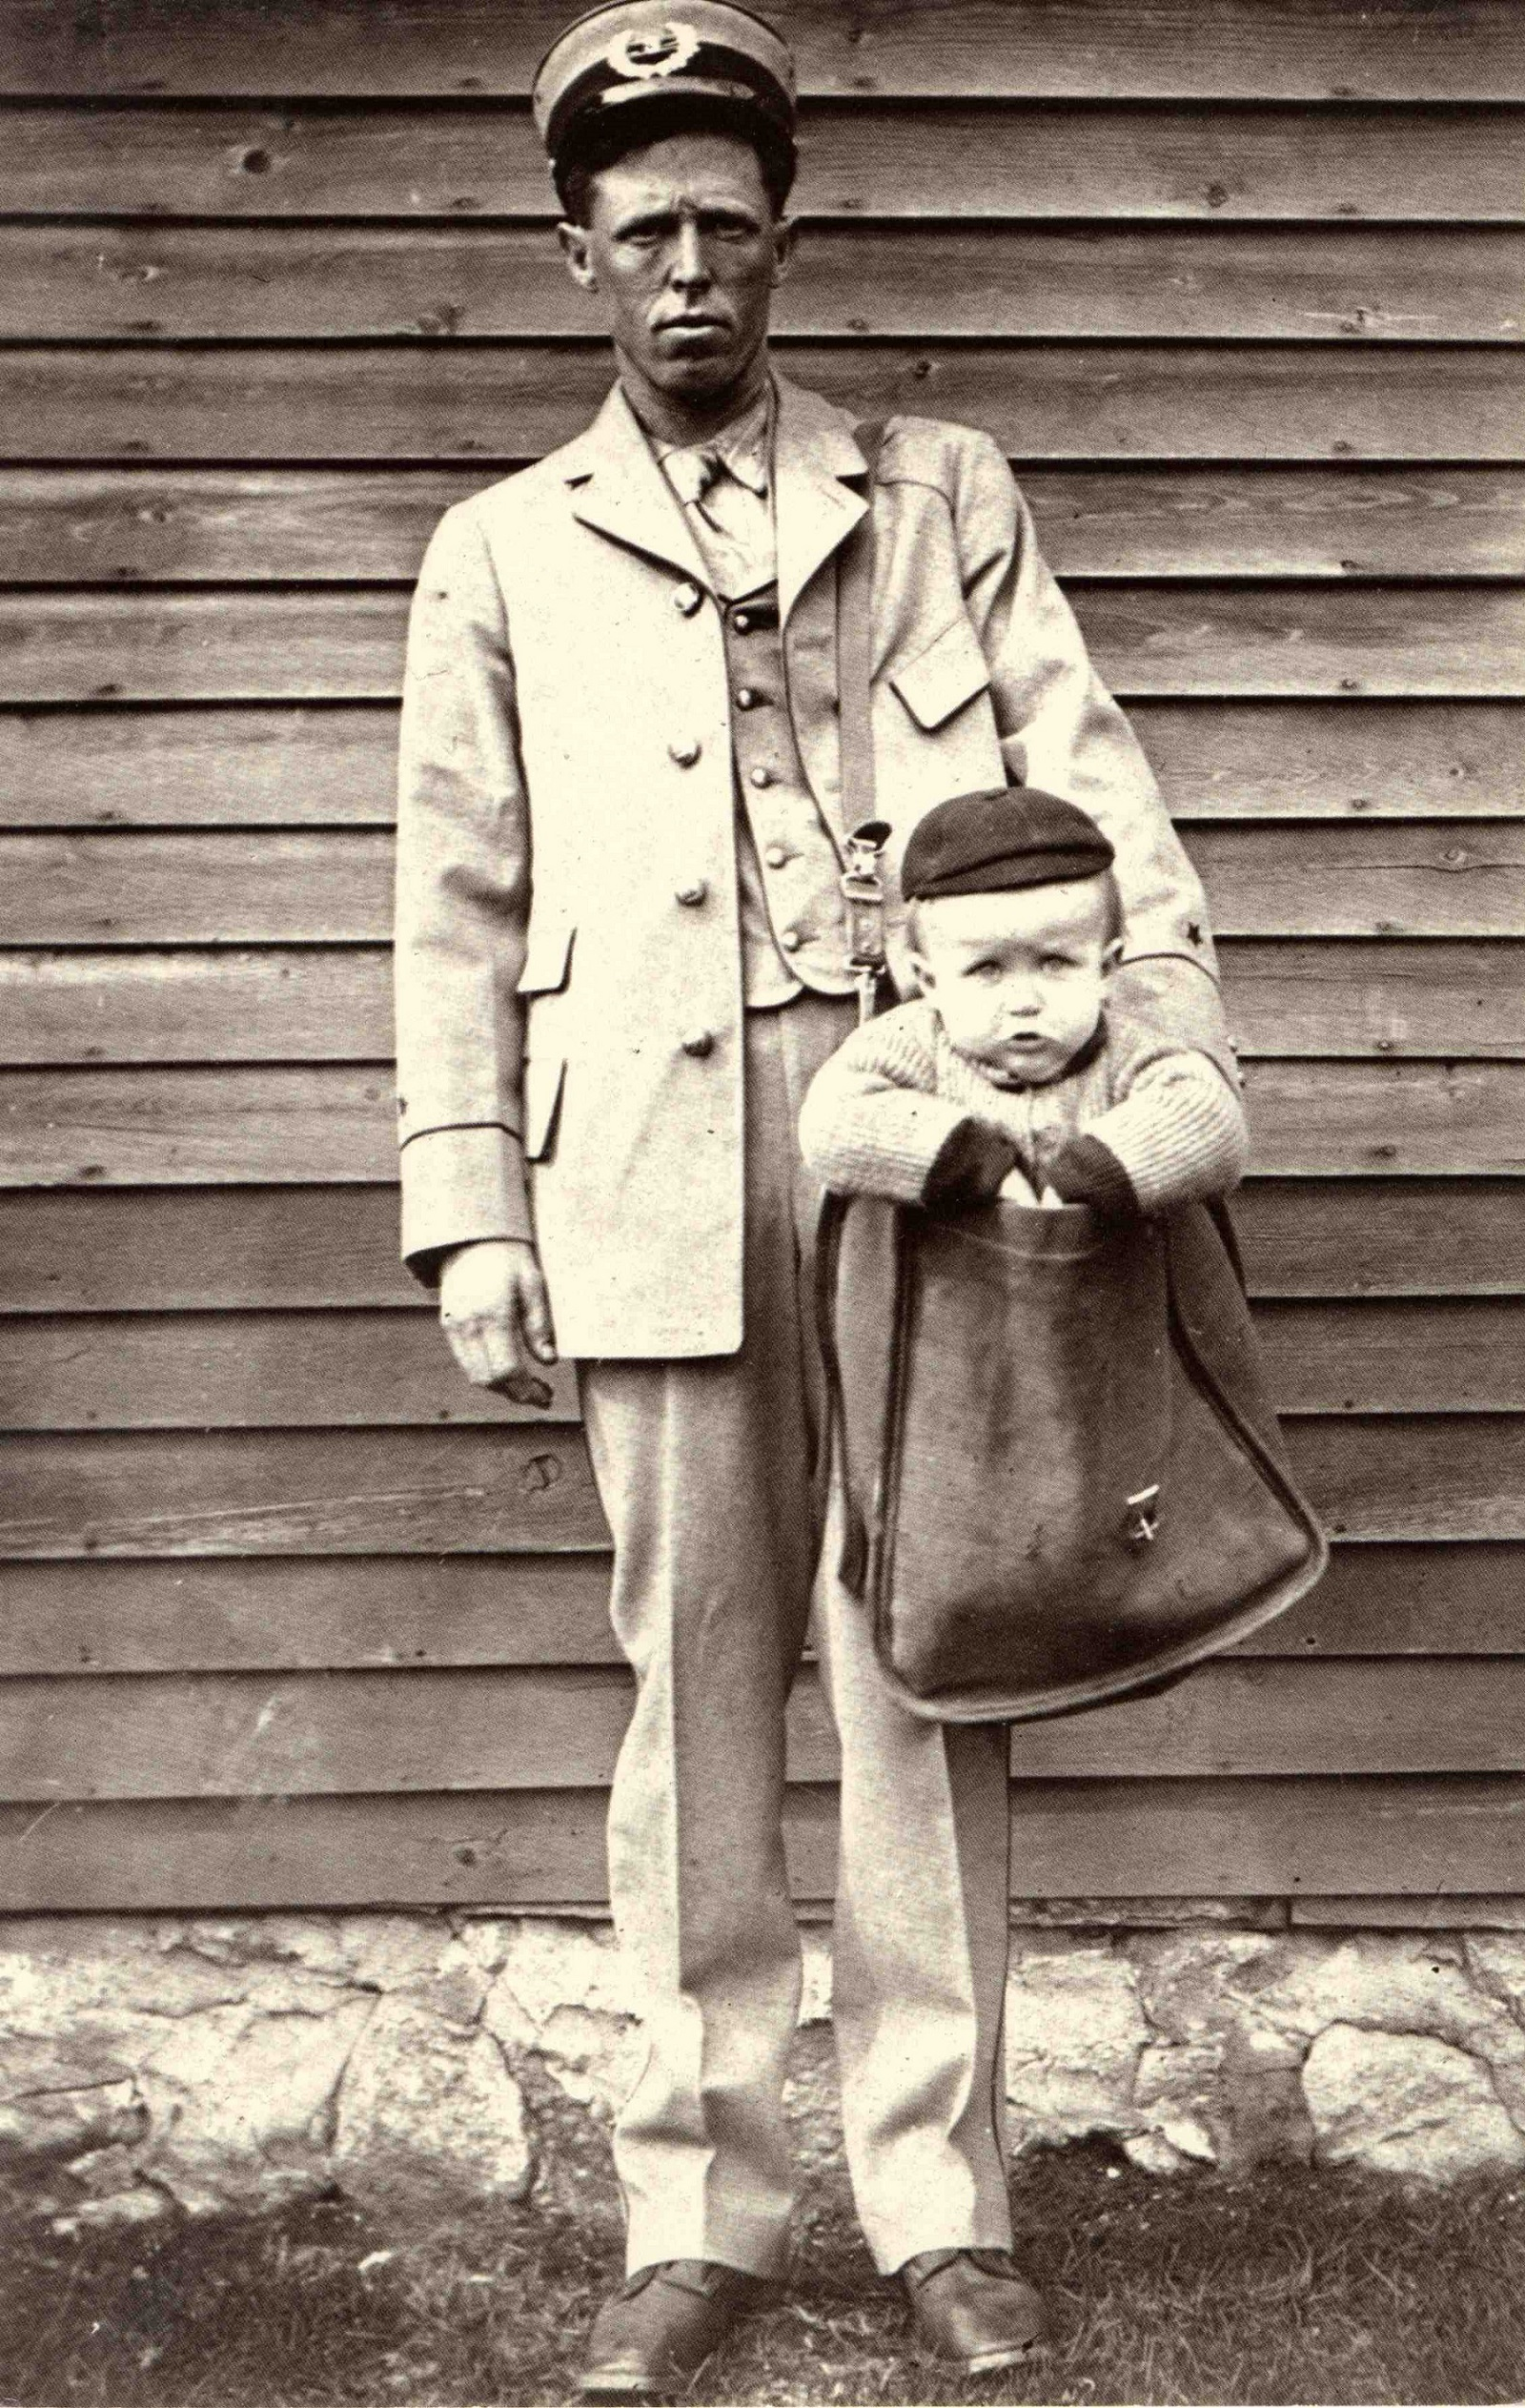 Carriers had fun with the idea of mailing babies. Photo courtesy of the Smithsonian National Postal Museum